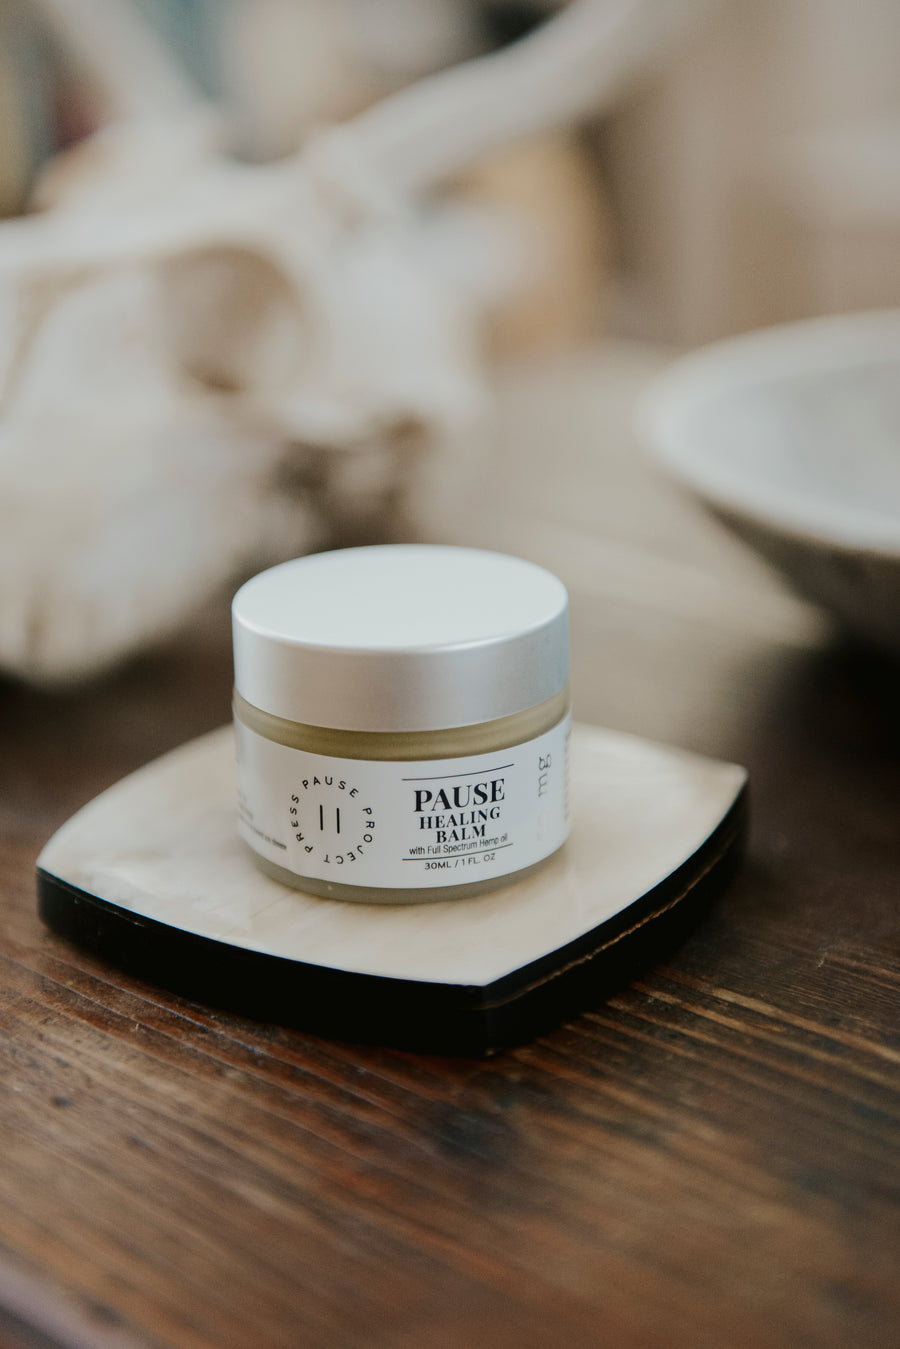 Pause Healing Balm-Higher End Goods